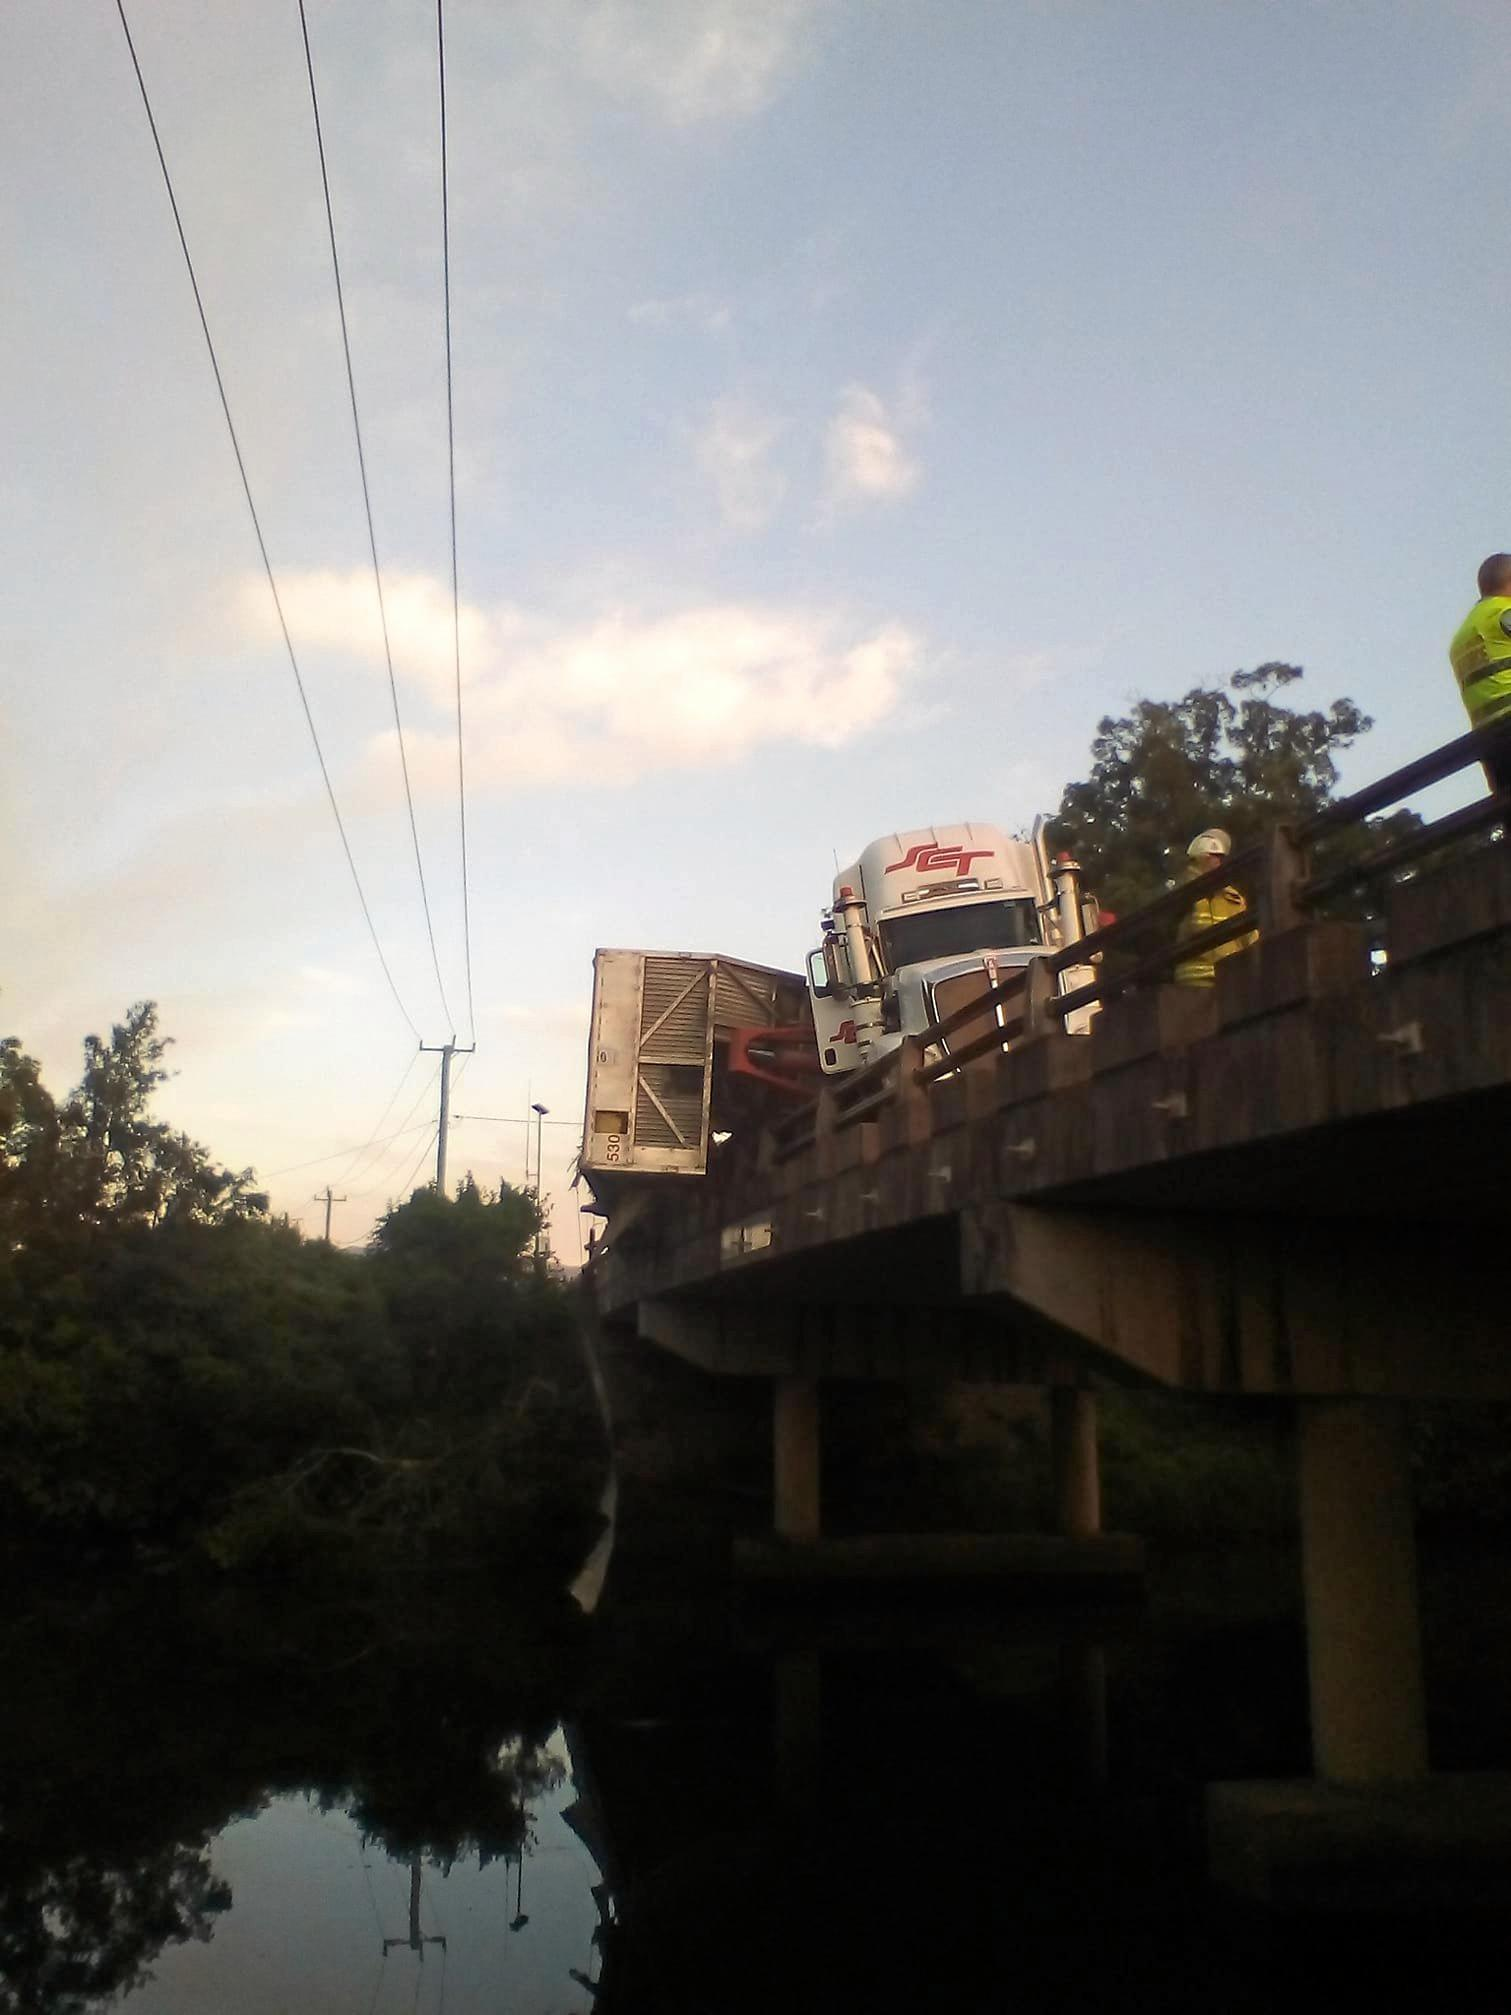 A semi trailer had collided with the guard rail of the Kynnumboon bridge.